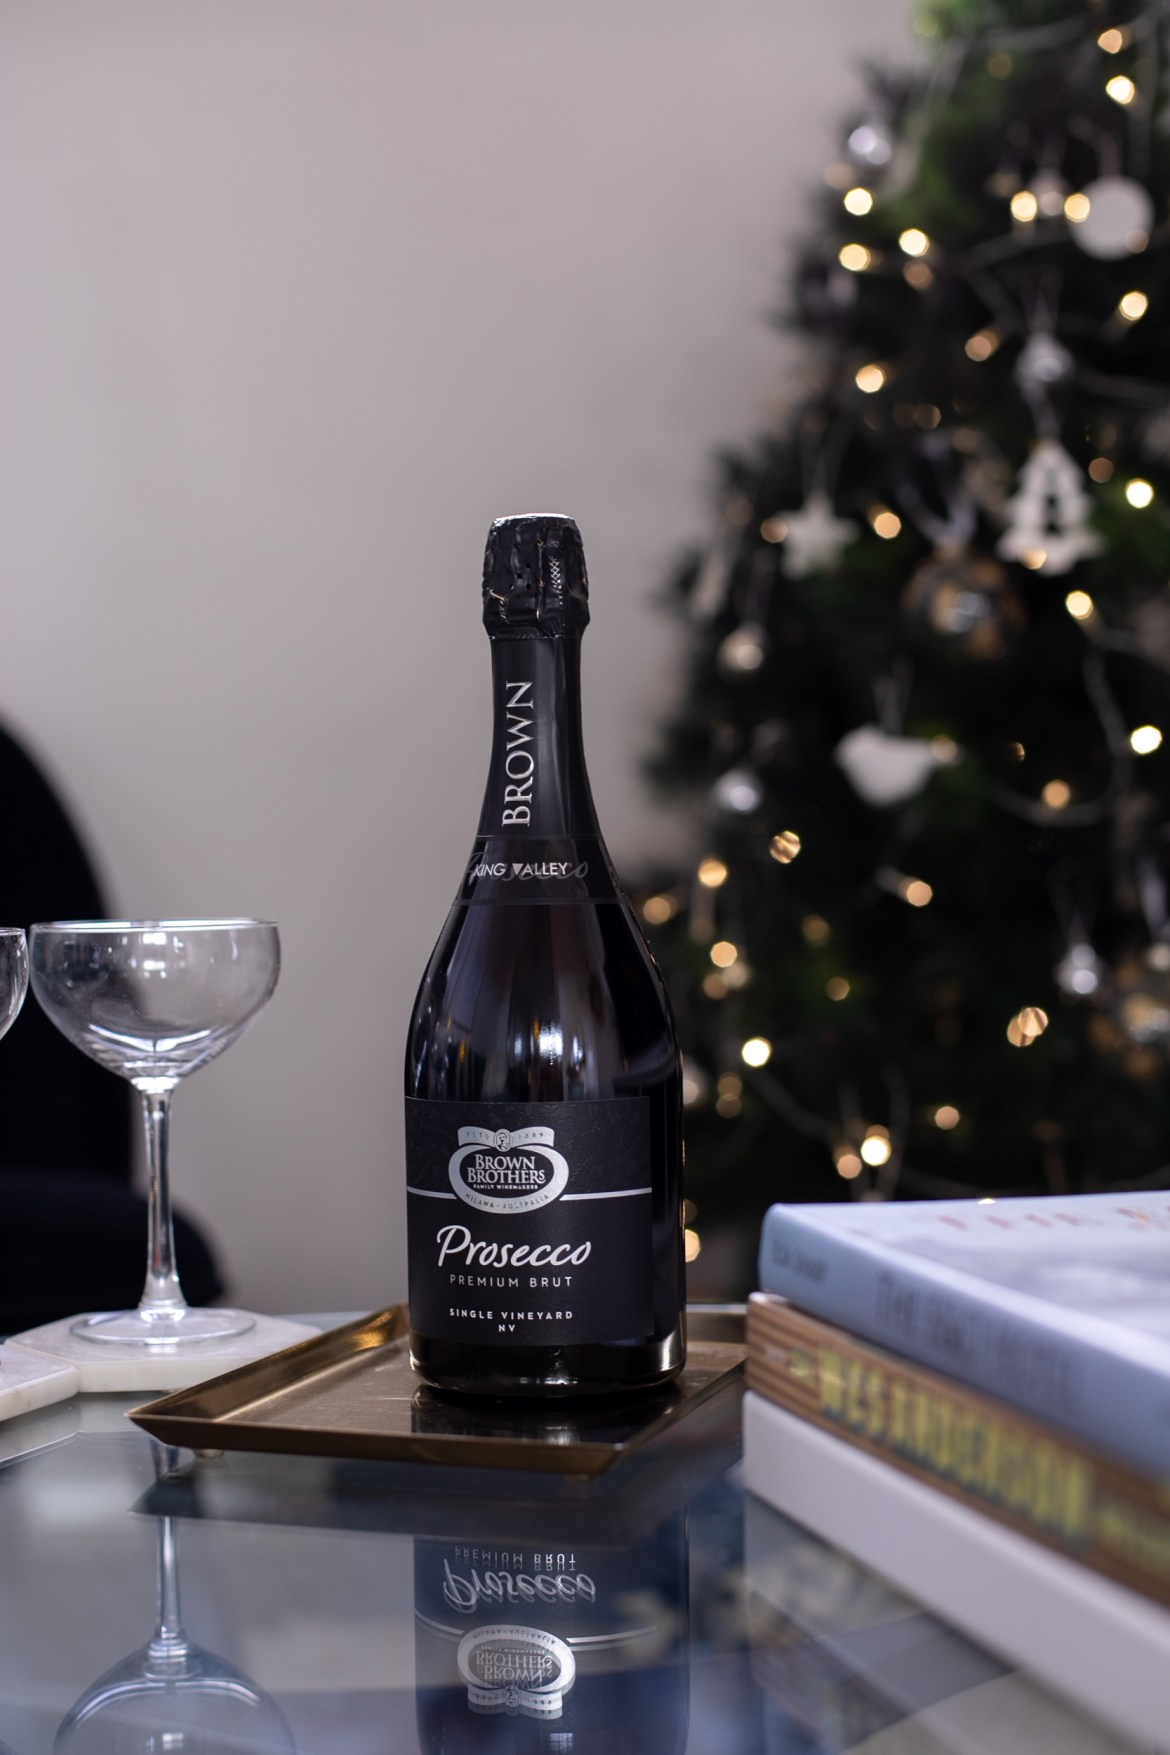 Gift ideas for Christmas 2020 the Prosecco for a friend or your dinner party